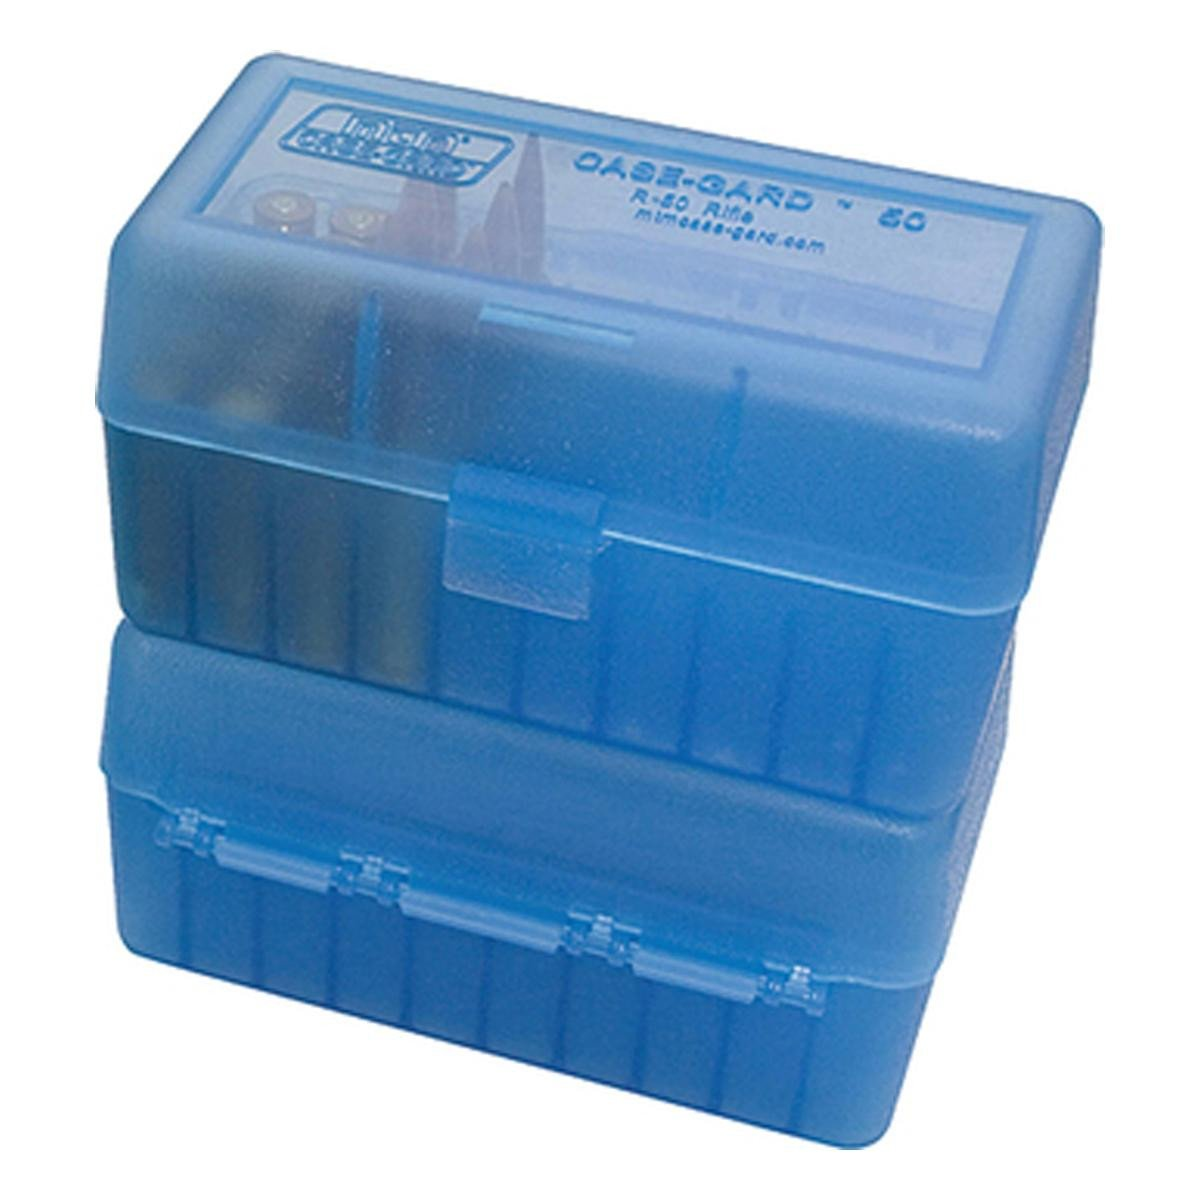 MTM Rifle Ammo Box - RS-S - 50 Round